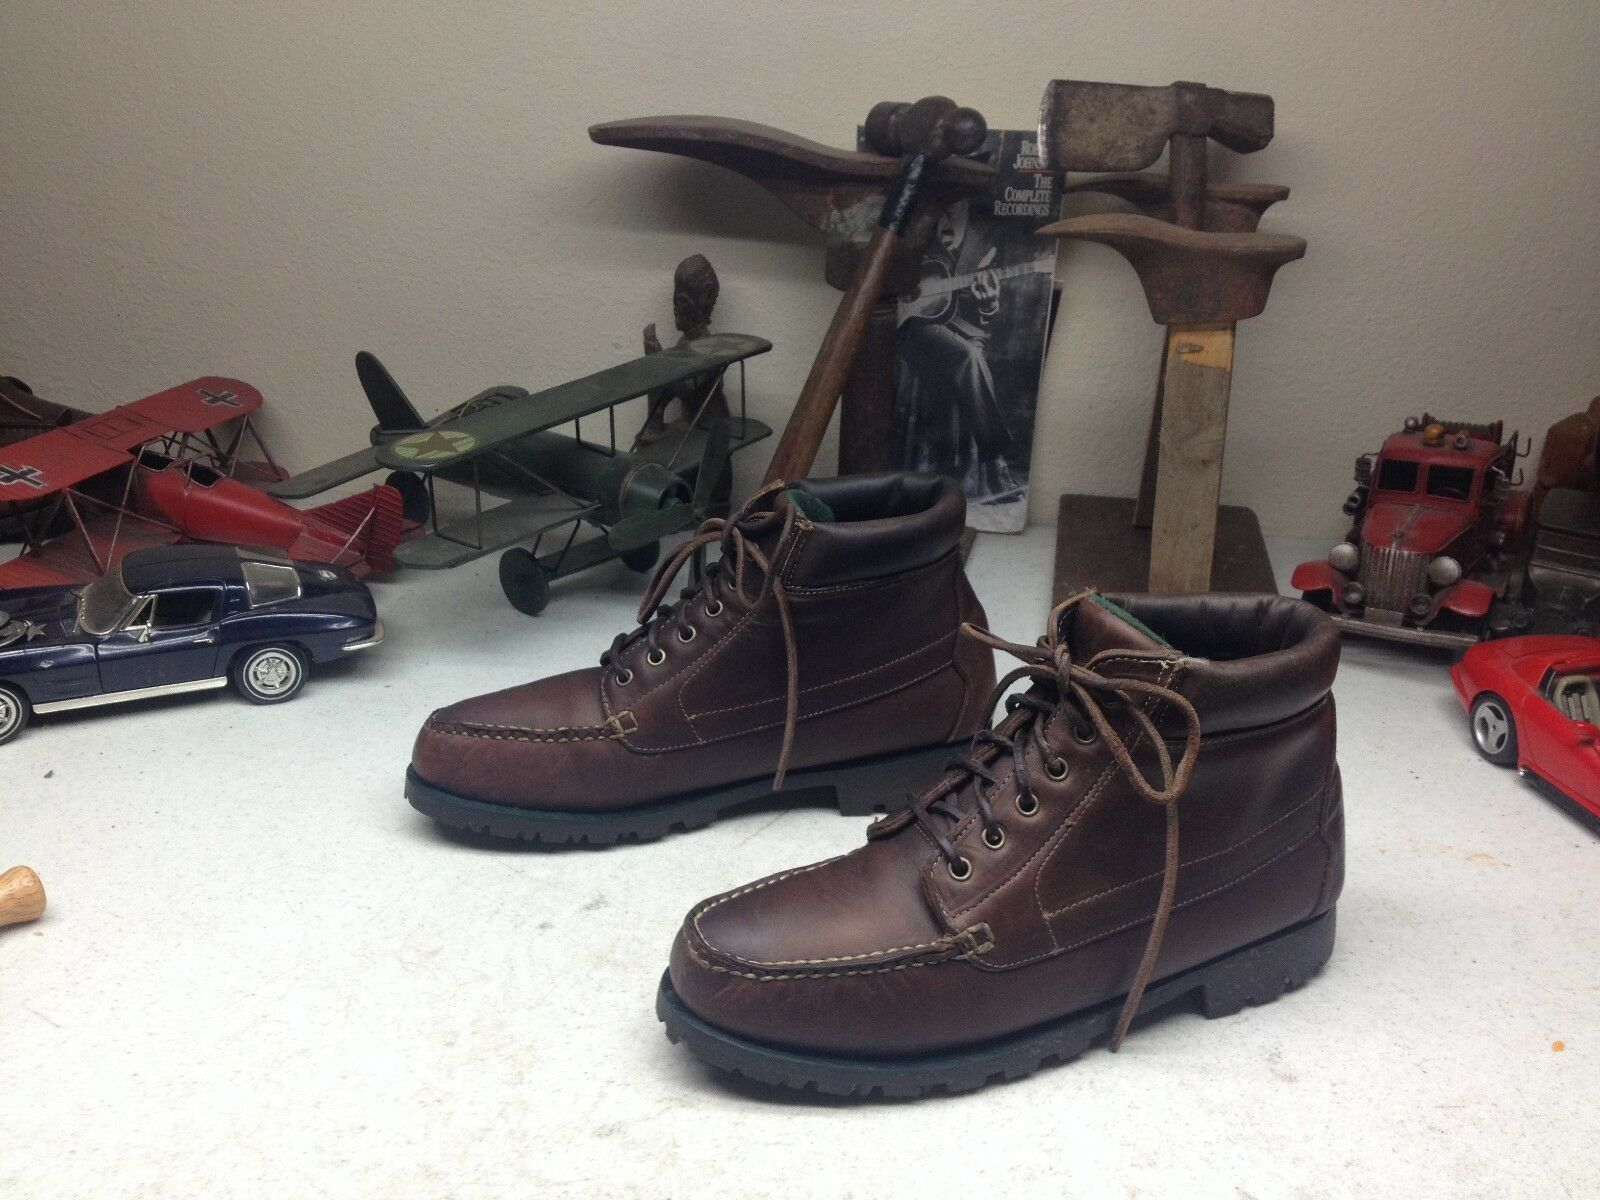 DISTRESSED RUSTIC H-H BROWN LEATHER LACE UP TRAIL HIKING ANKLE BOOTS 8.5M